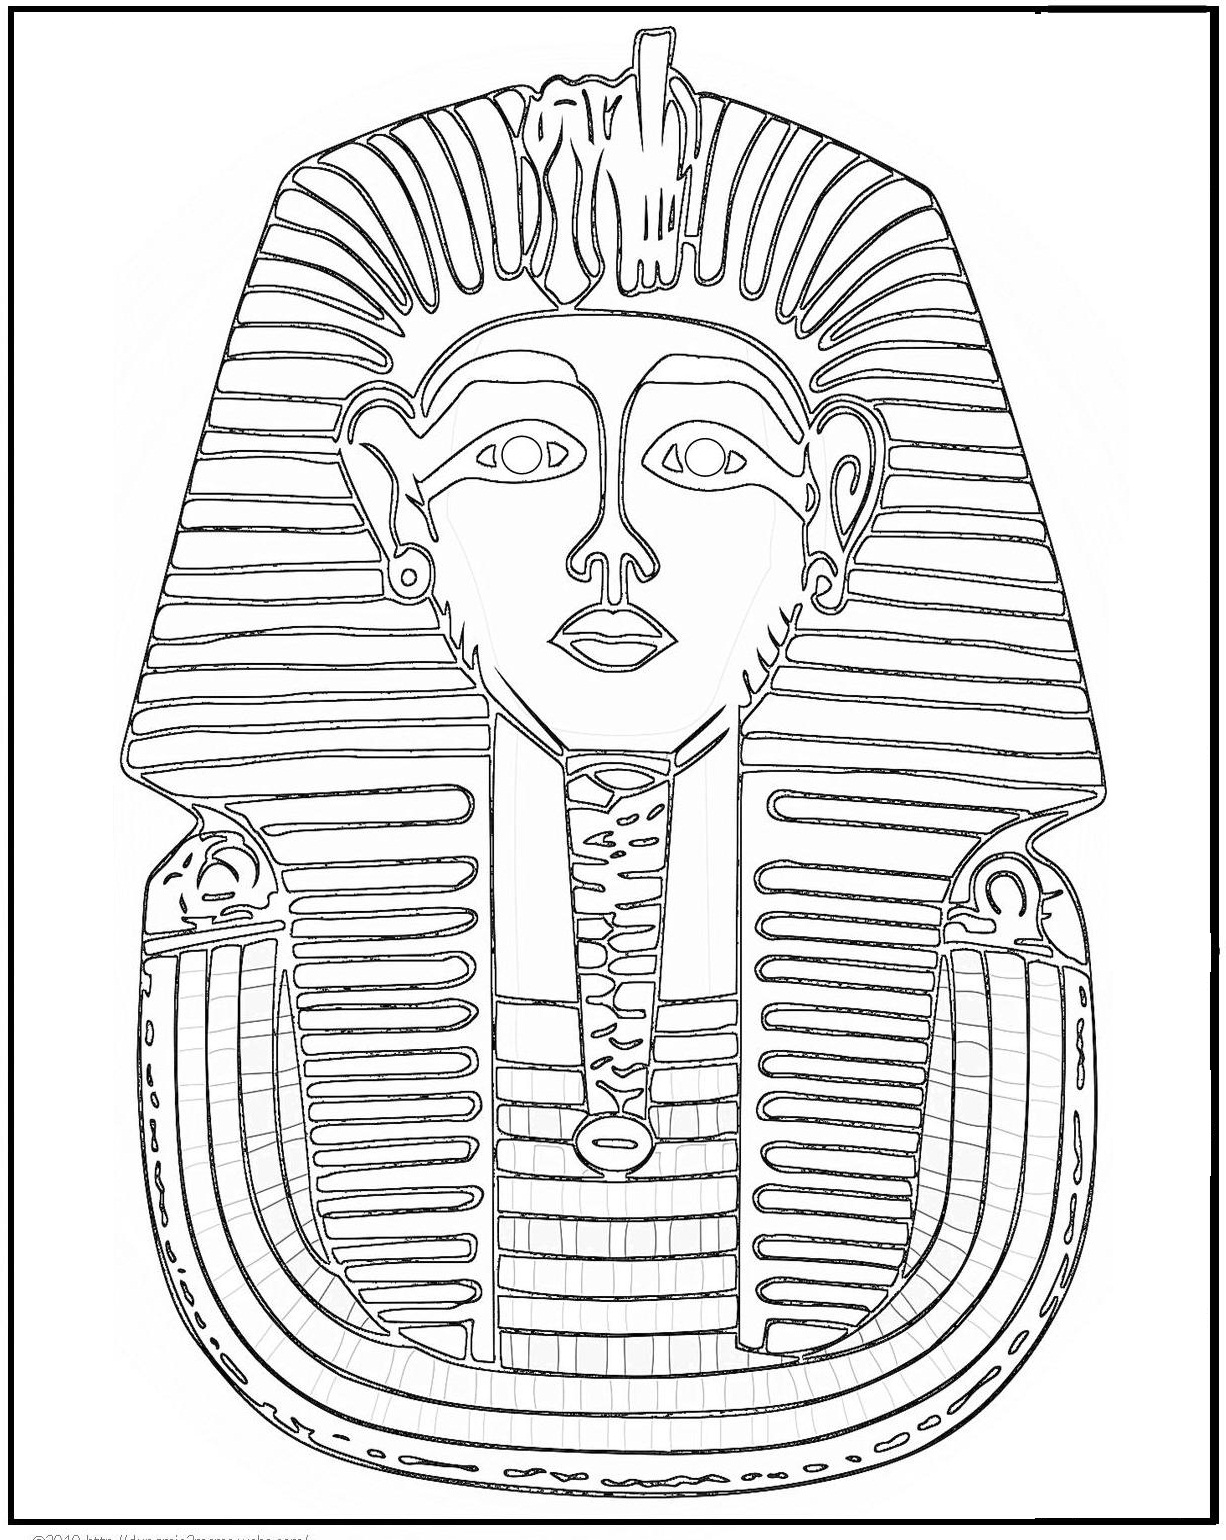 Ancient-Egypt-Coloring-Page.jpg